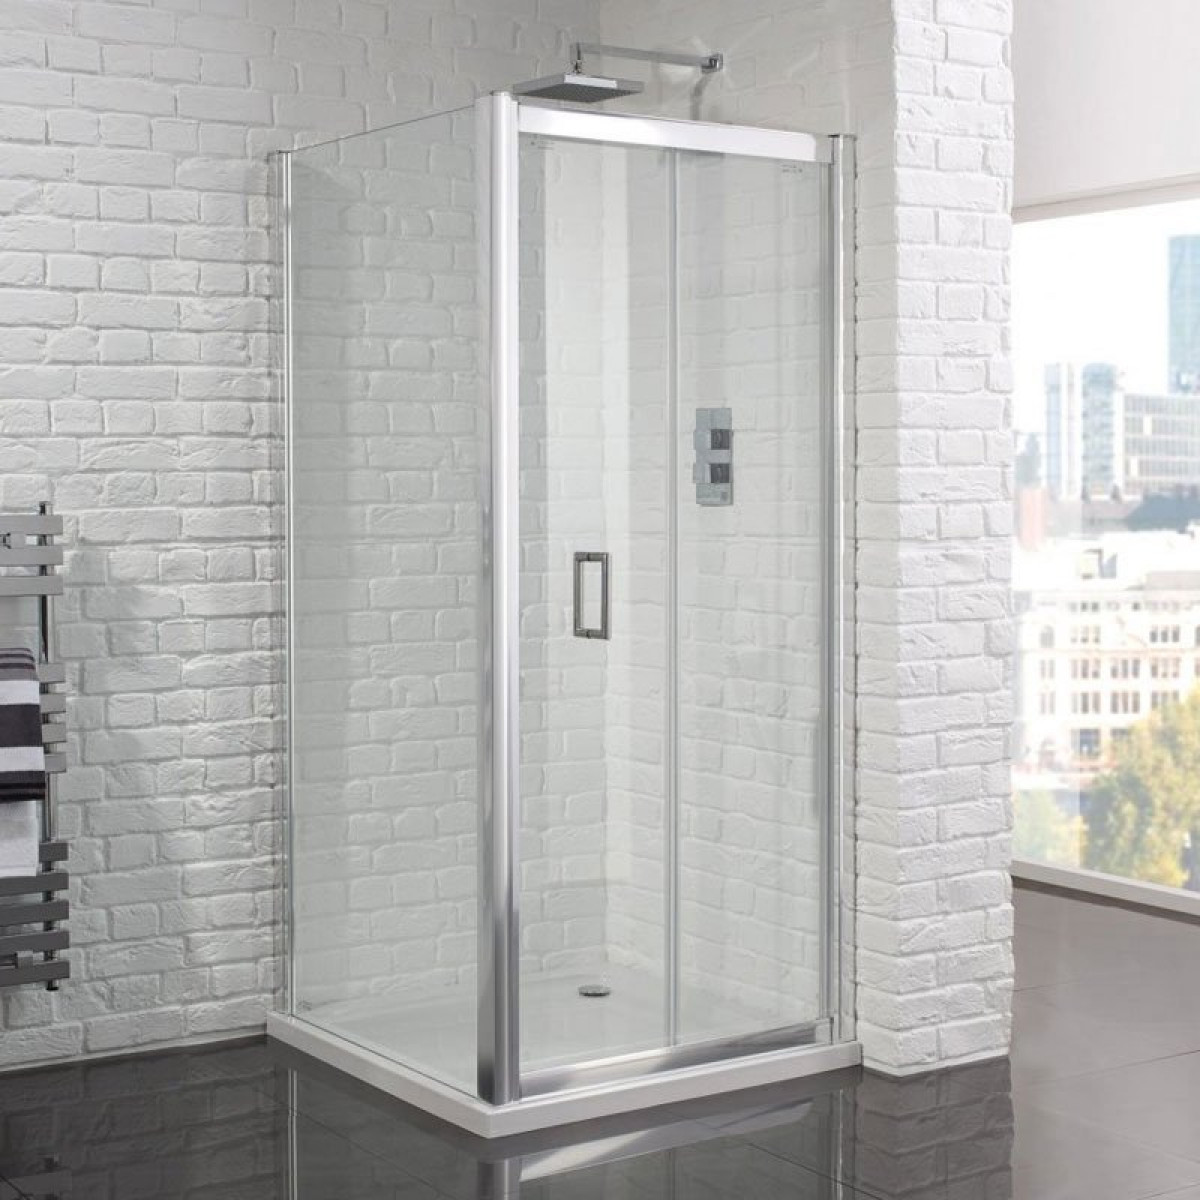 Aquadart venturi 6 frameless 1000mm bifold shower door for 1000mm shower door